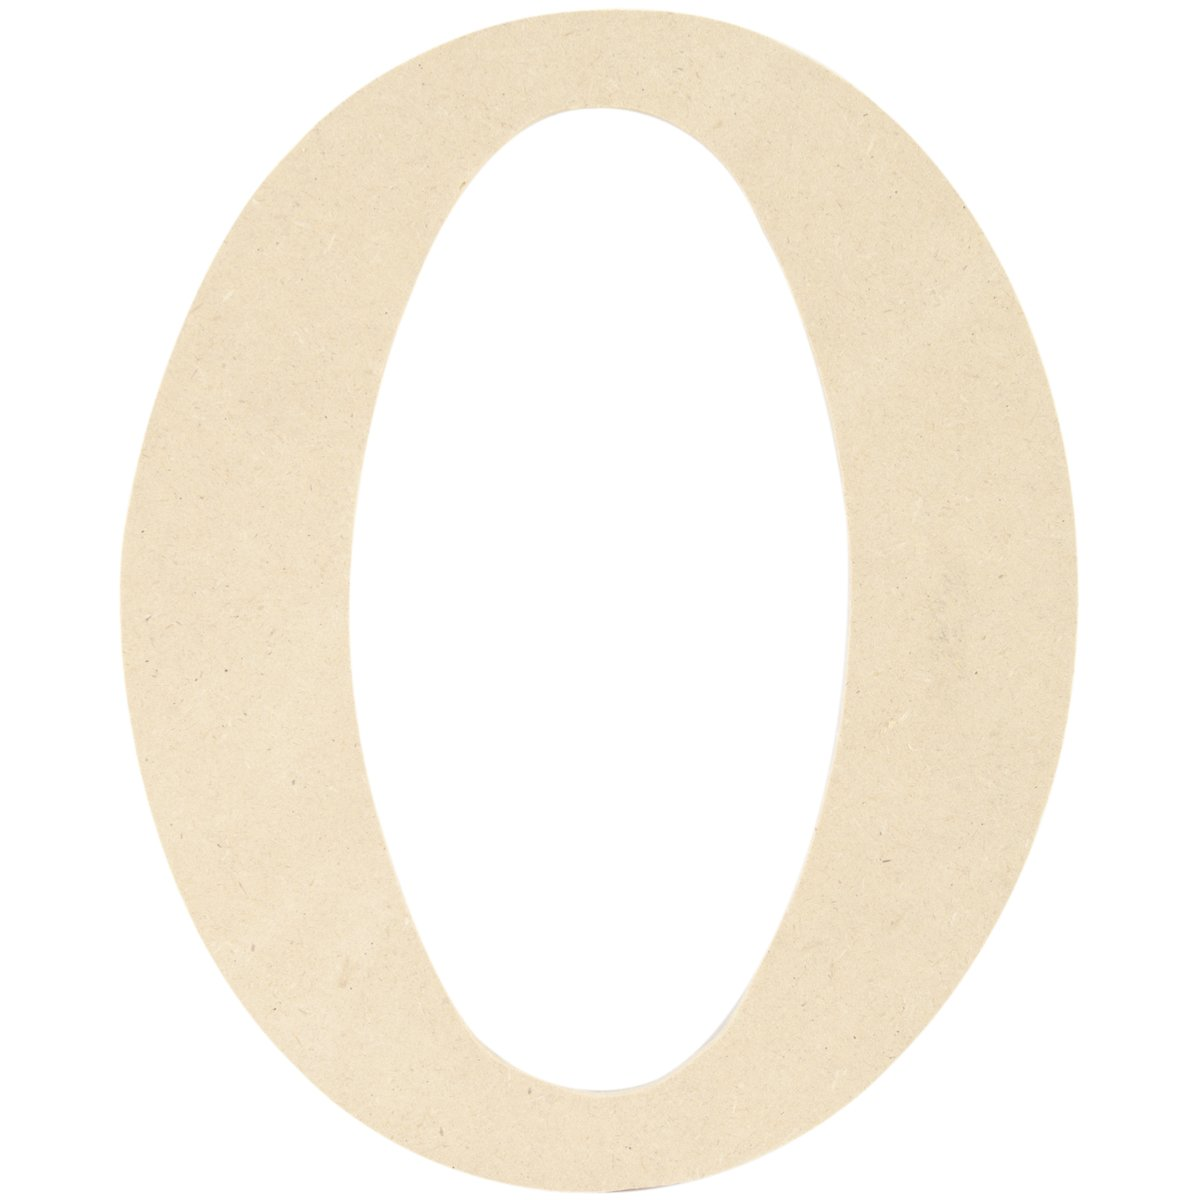 MPI MDF Classic Font Wood Letters and Numbers, 9.5-Inch, Monogram O MDF9-L415